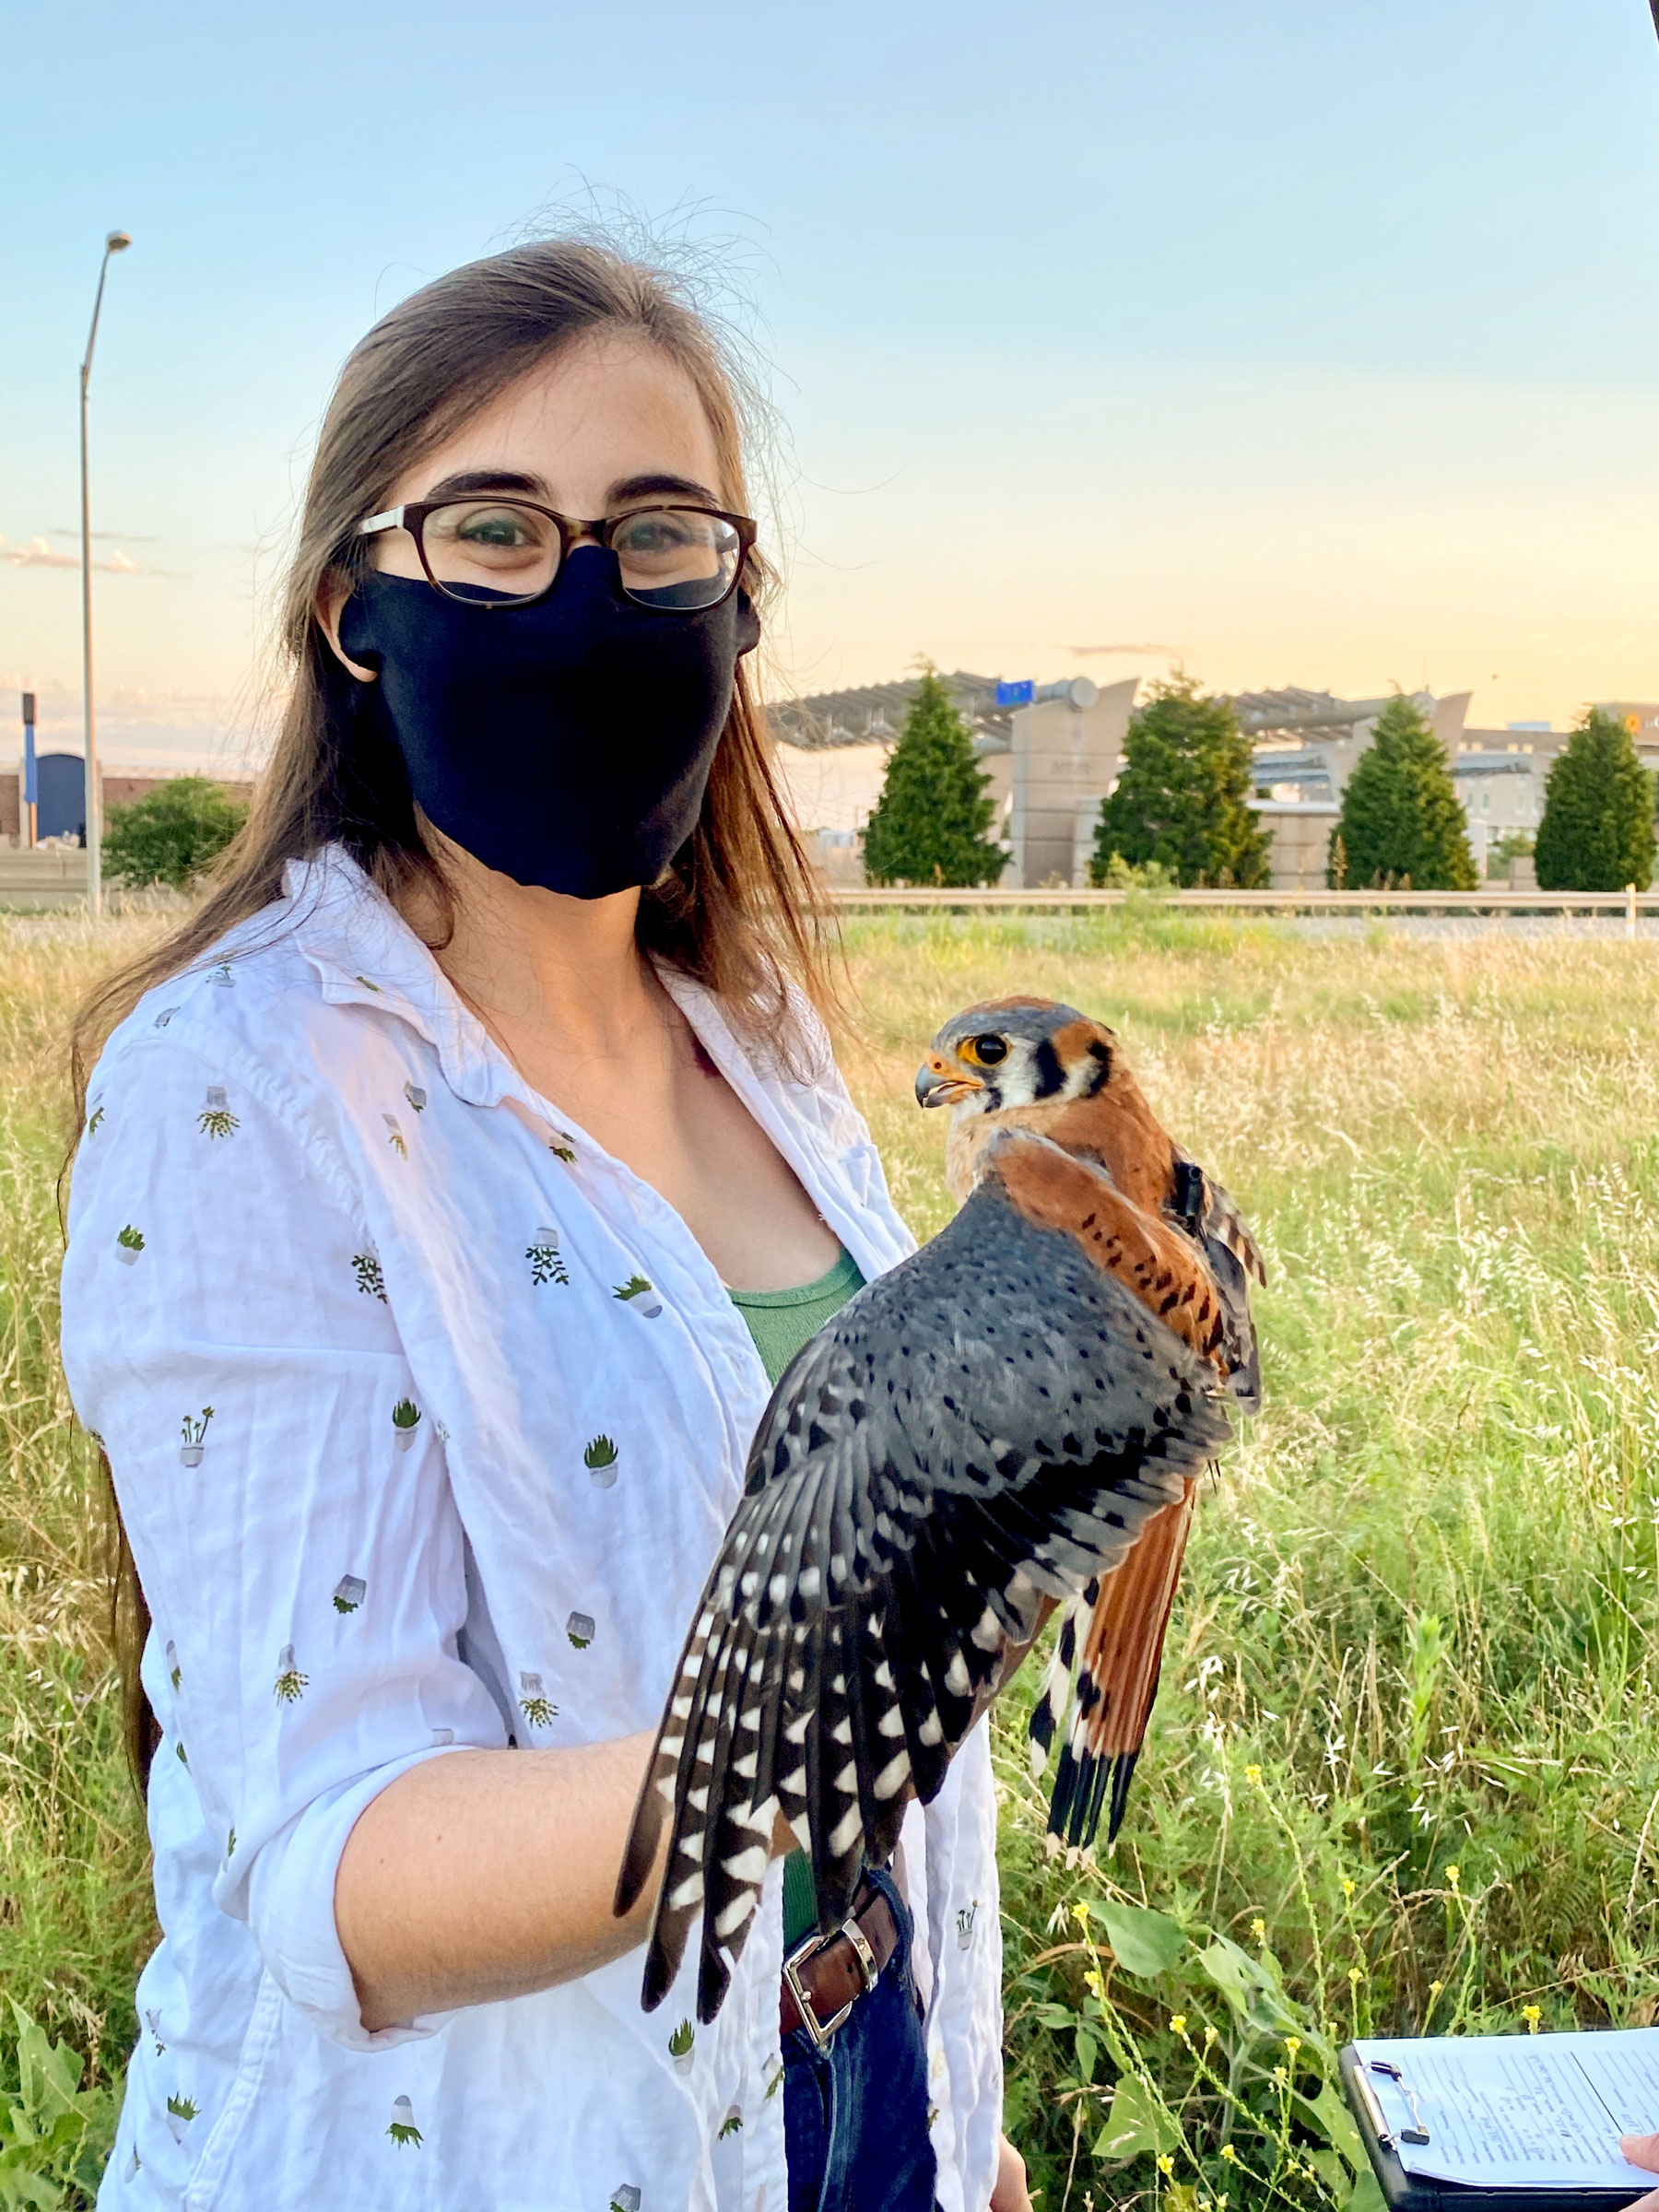 """Biles and her team were able to catch one kestrel in June of 2020, seen here. """"This kestrel happened to be a year-round resident, which was unknown at the time of his initial capture and attachment of his tracker,"""" said Biles. Heather Bullock"""